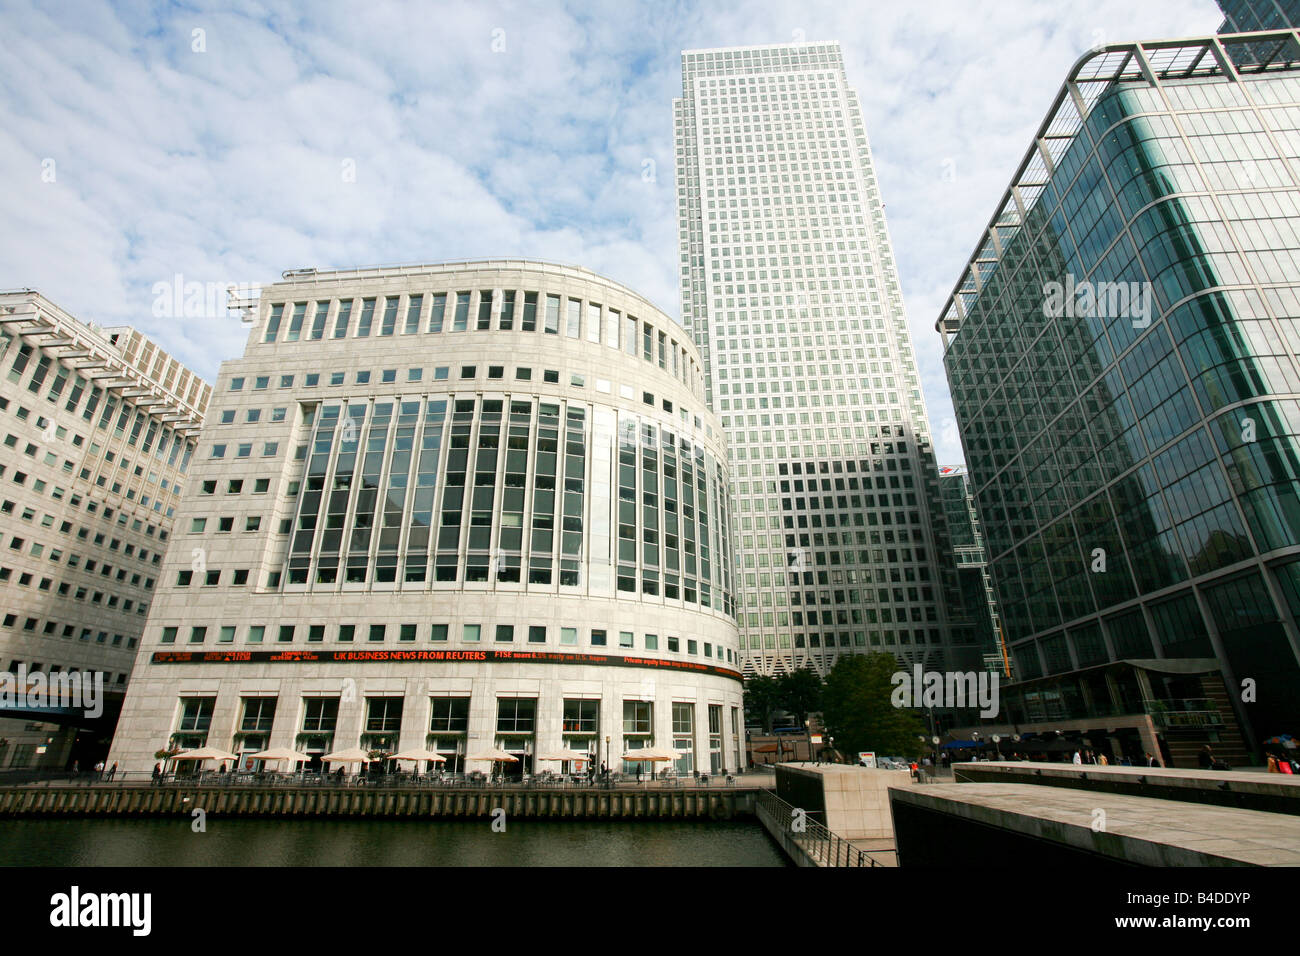 Reuters Plaza Canary Wharf London Docklands banking and financial area district, London UK - Stock Image